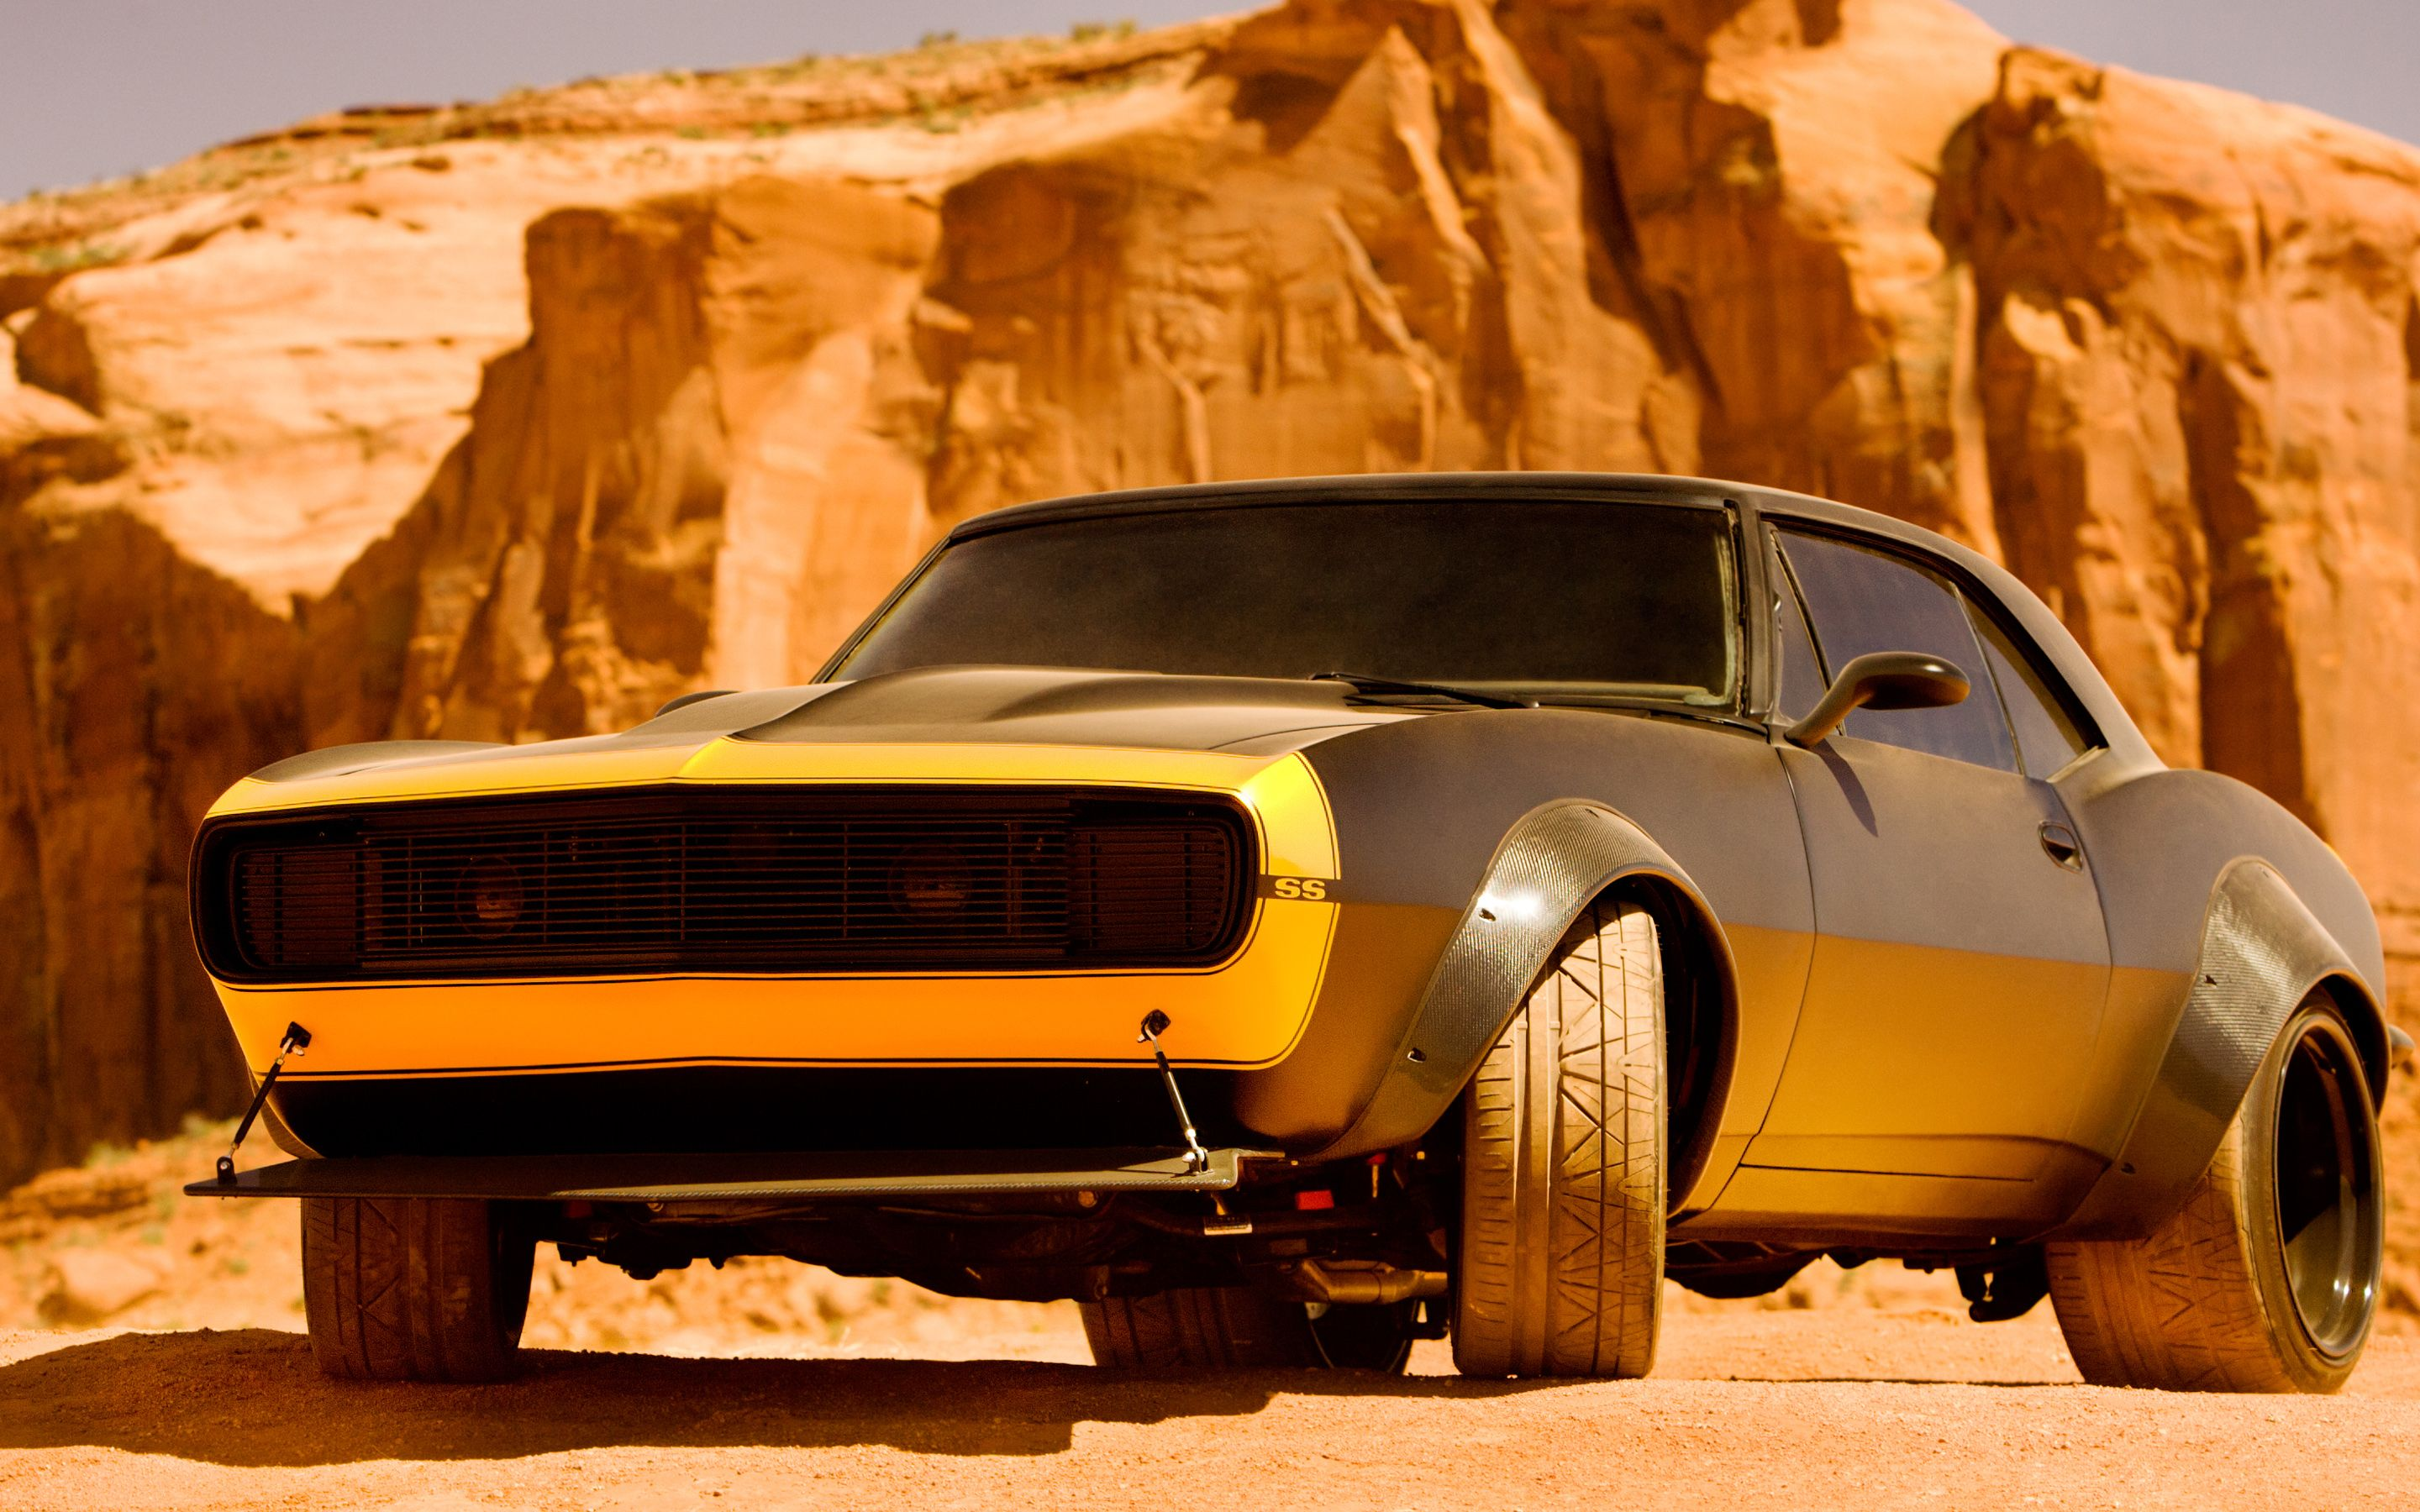 bumblebee camaro transformers 4 wallpaper | american muscle